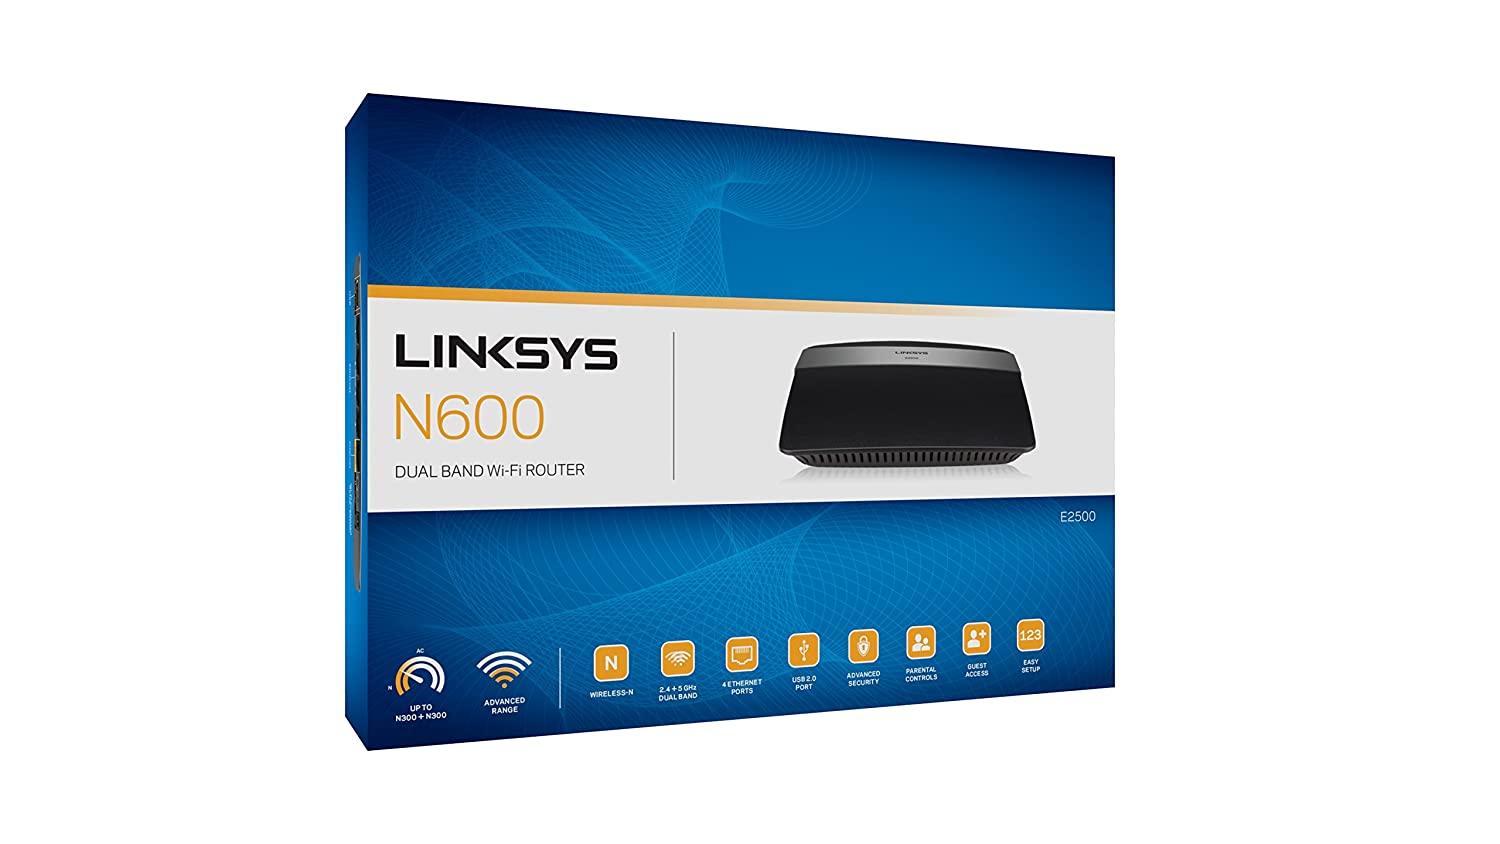 Linksys N600 Dual Band Wireless Router (E2500-CA)